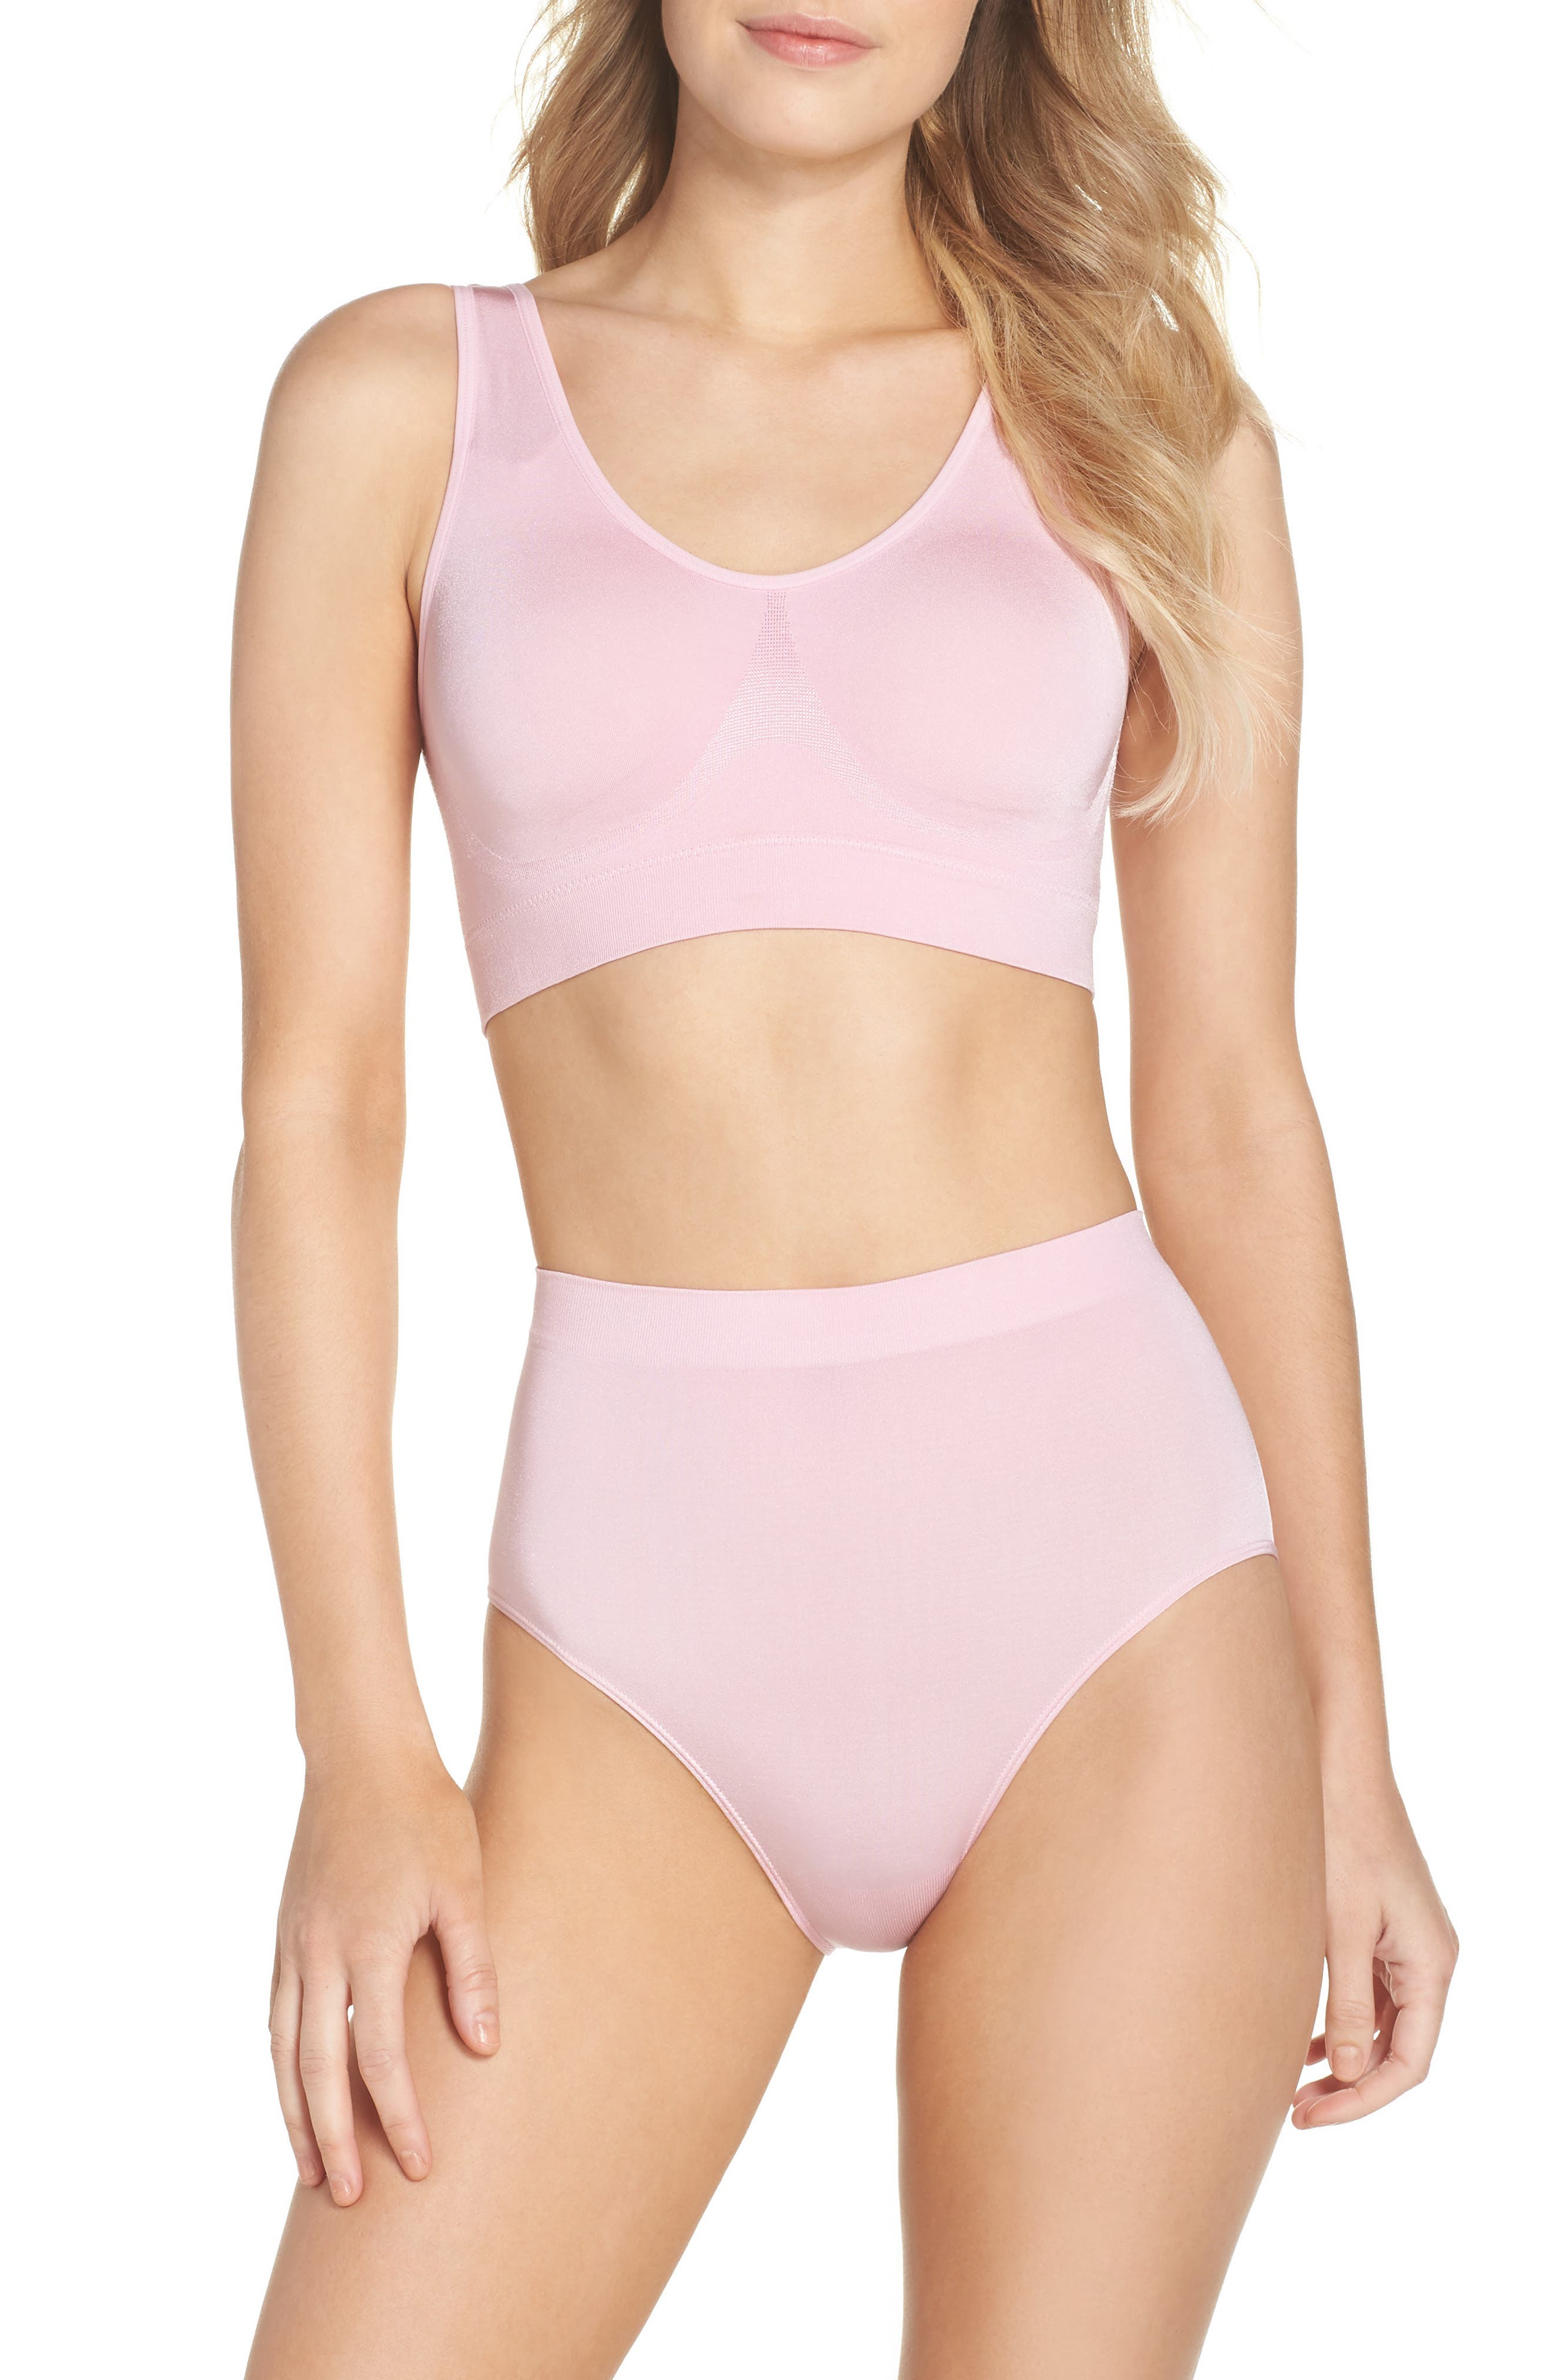 B Smooth Seamless Bralette,                             Alternate thumbnail 4, color,                             Cameo Pink